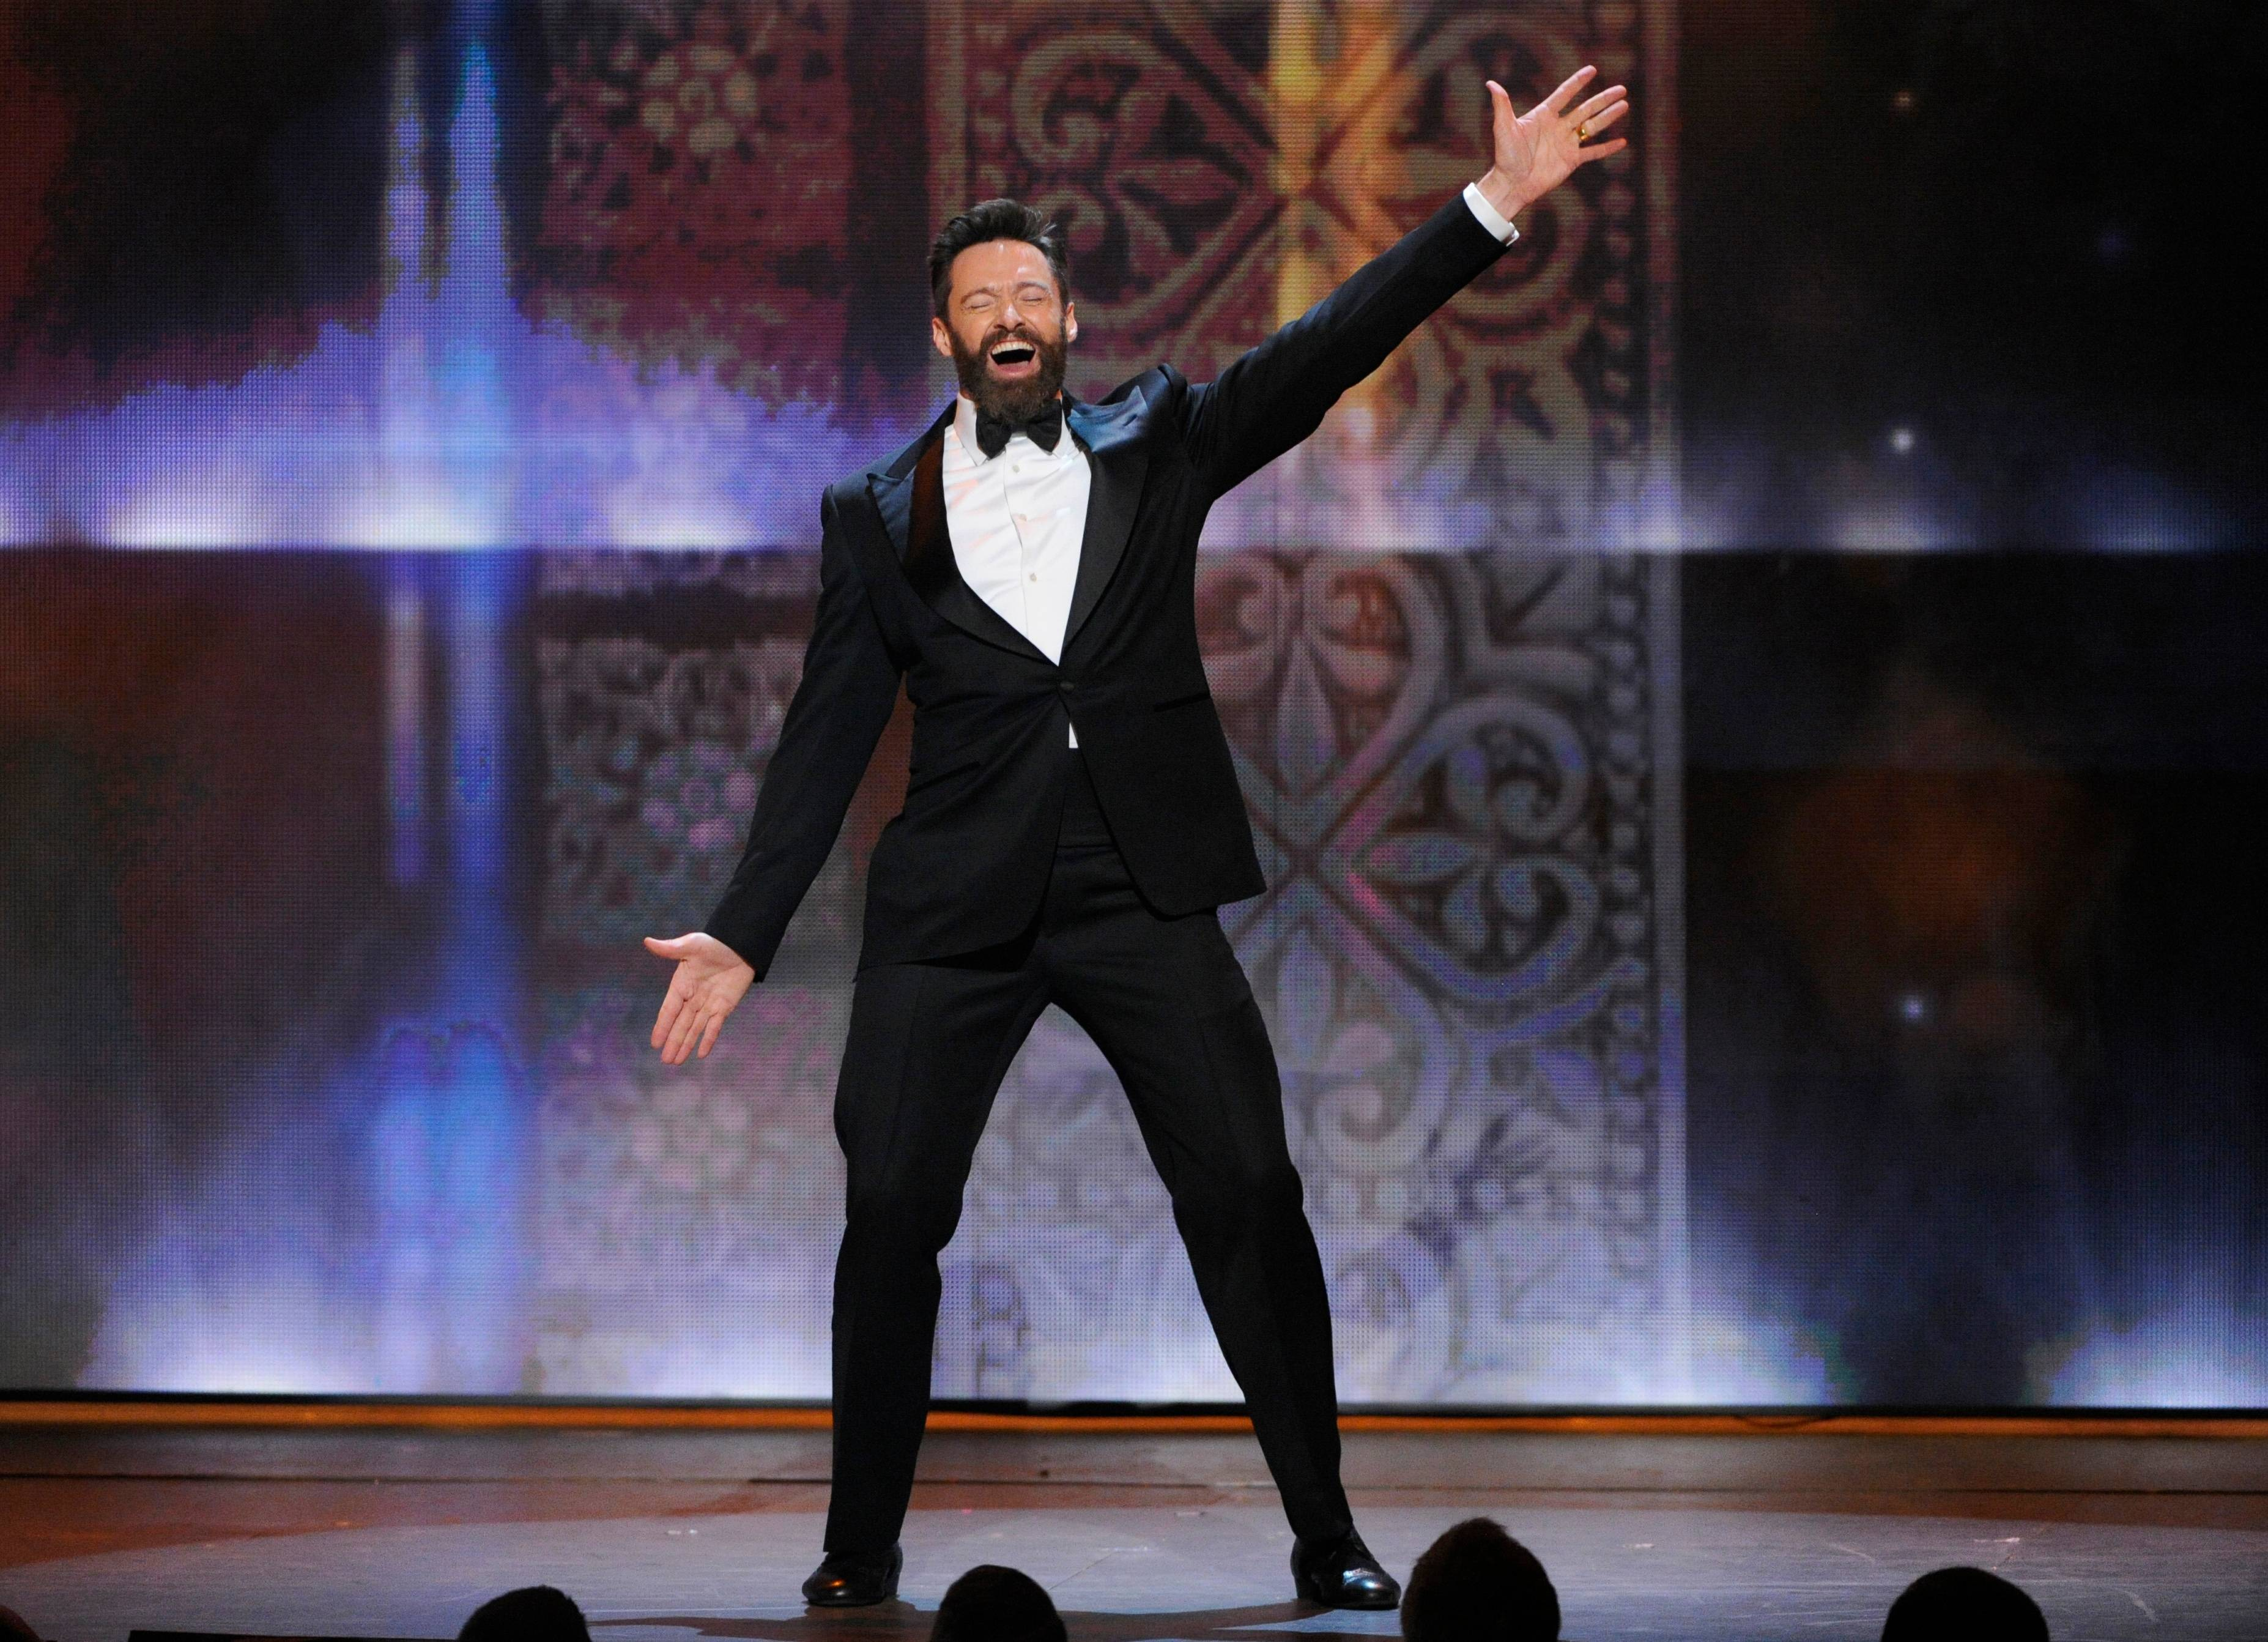 Host Hugh Jackman performs during the opening of at the 68th annual Tony Awards at Radio City Music Hall on Sunday.